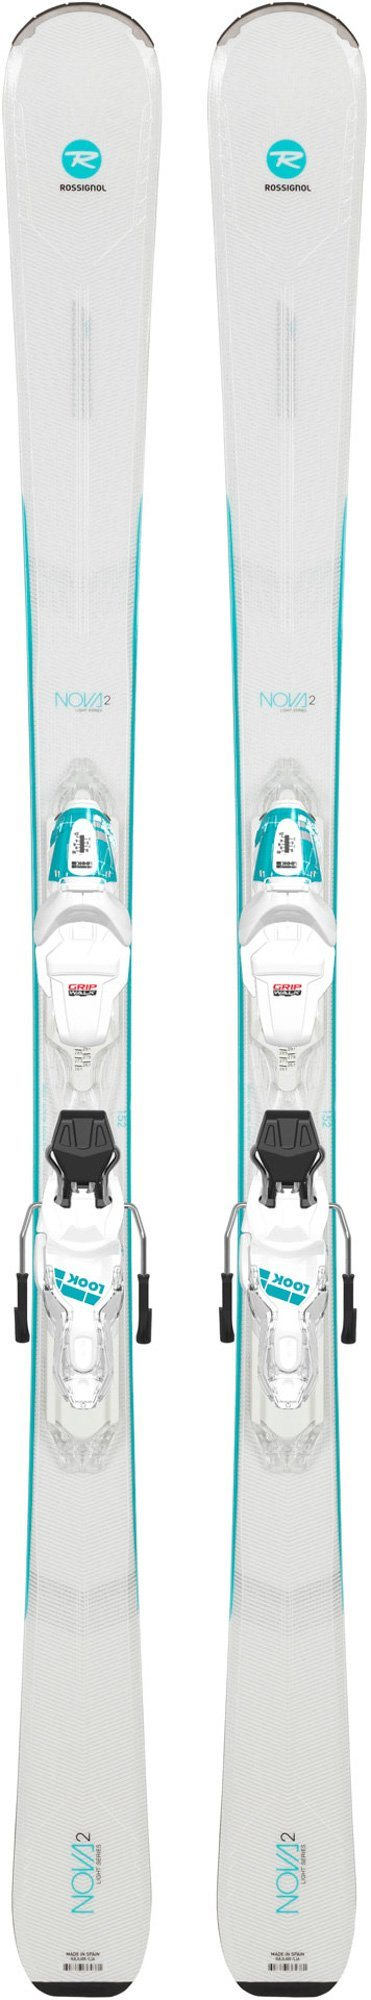 ROSSIGNOL WOMEN'S NOVA 2 SKI with EXPRESS W 10 GW BINDING